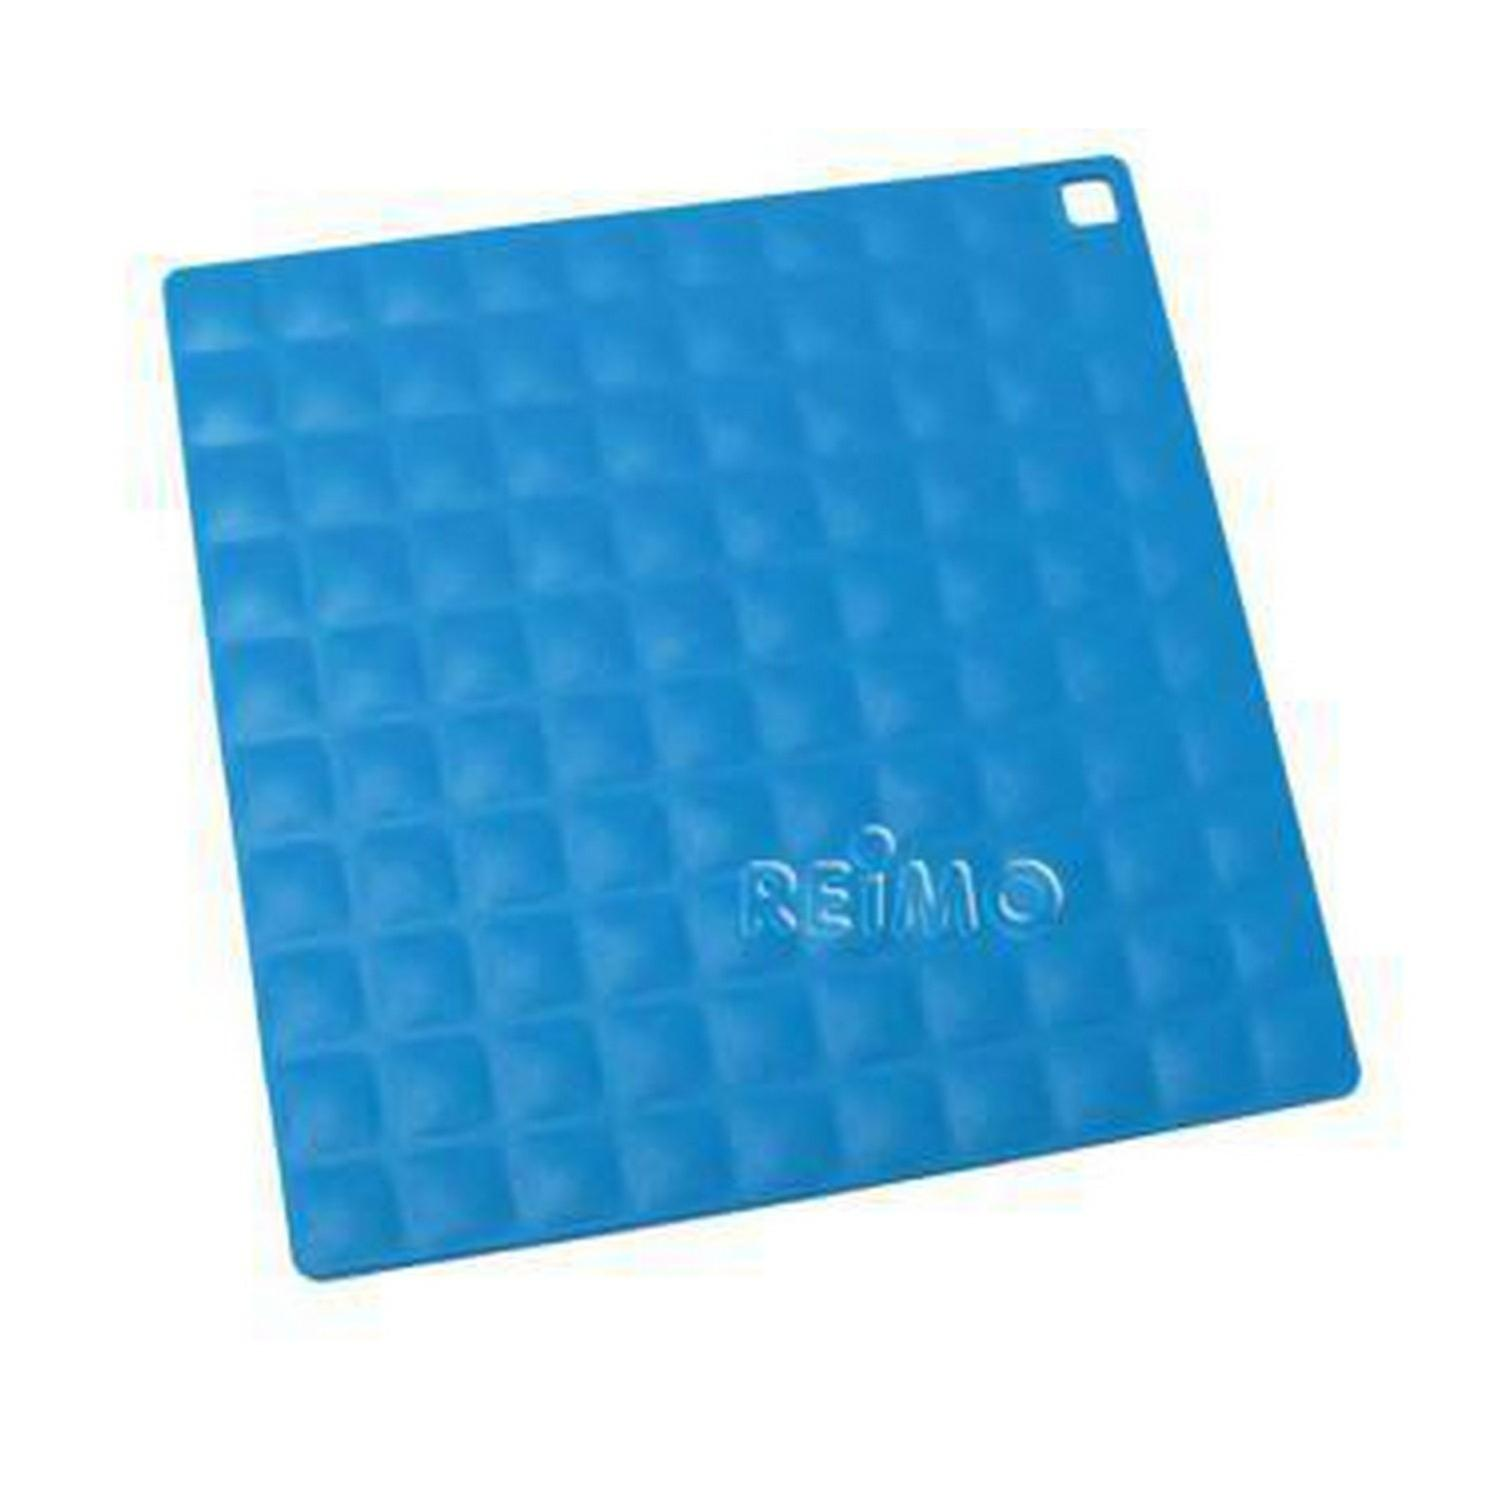 Camp 4 3-In-1 Silicone Kitchen Mat